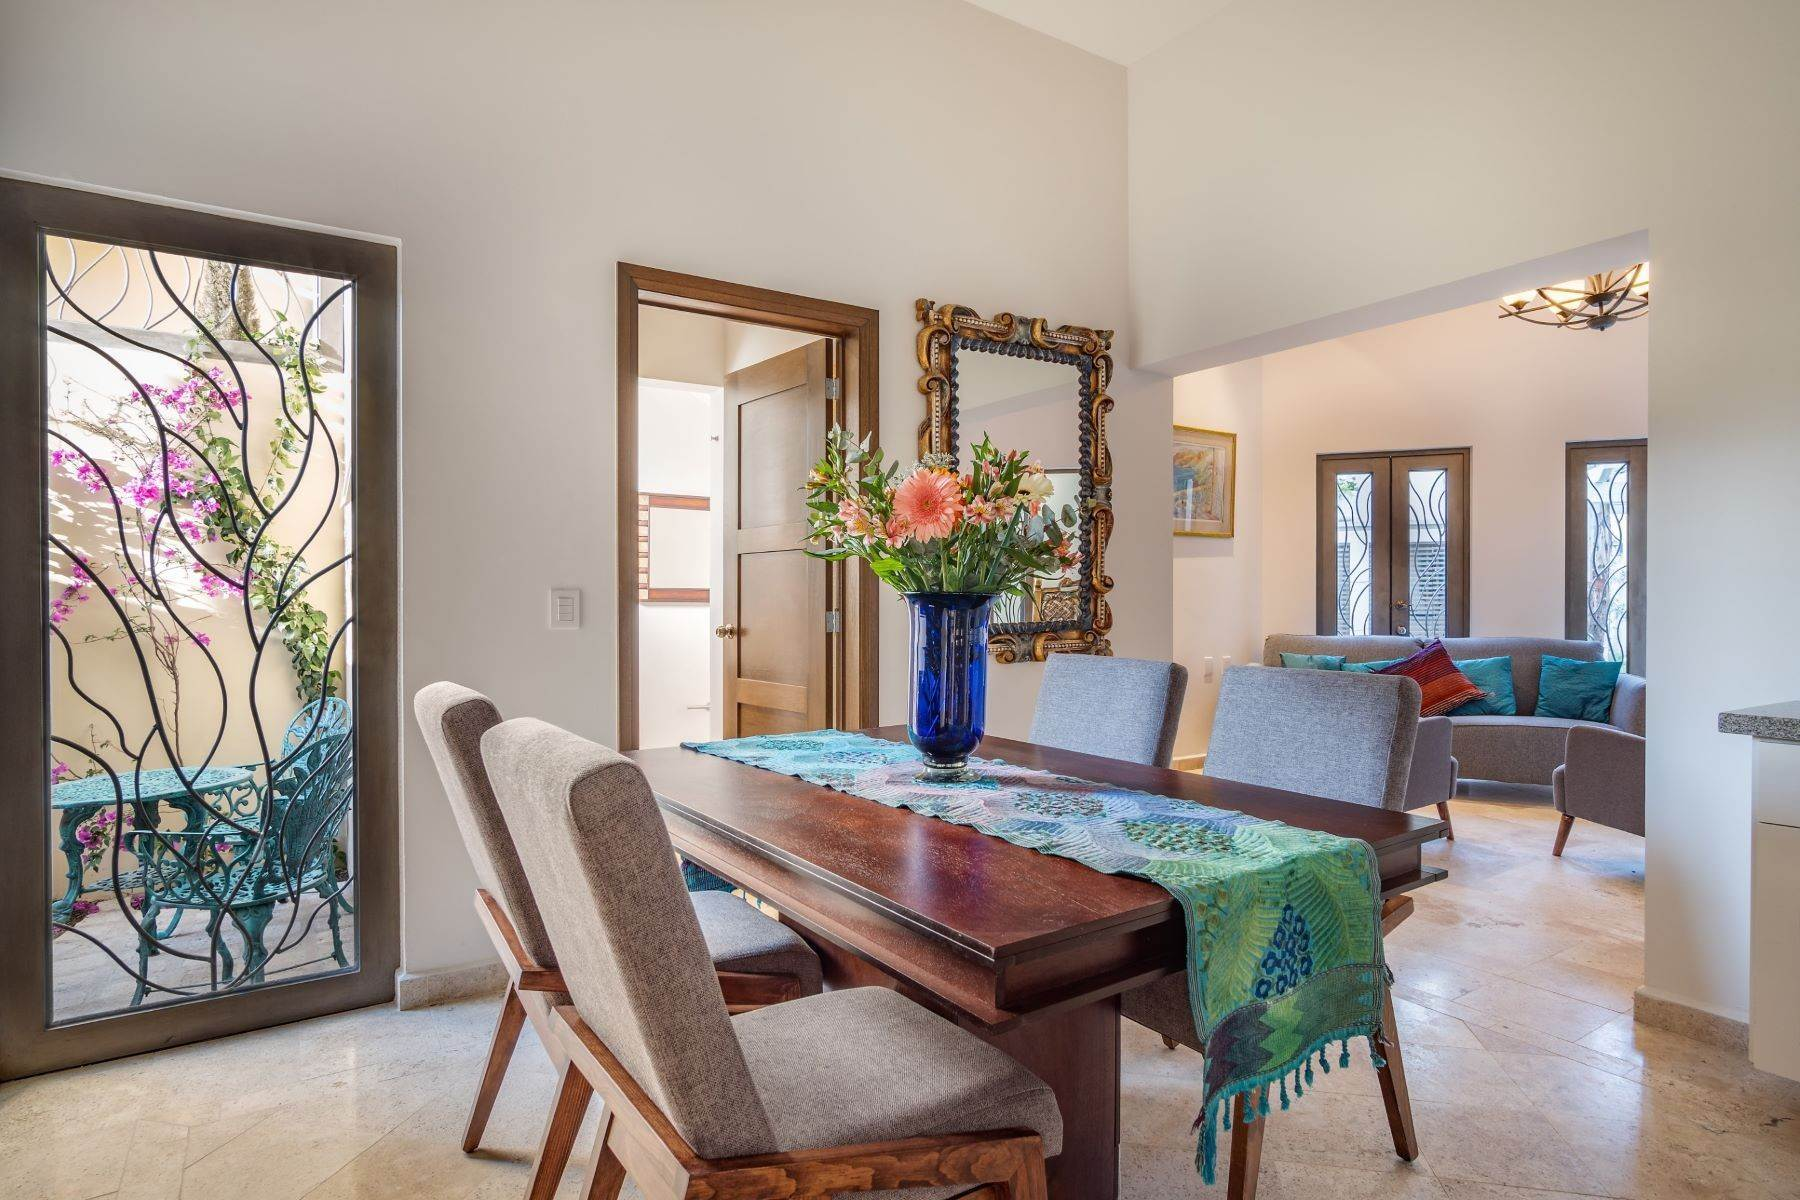 7. Single Family Homes for Sale at Guadalupe Condo Amado Nervo 8-A San Miguel De Allende, Guanajuato 37710 Mexico